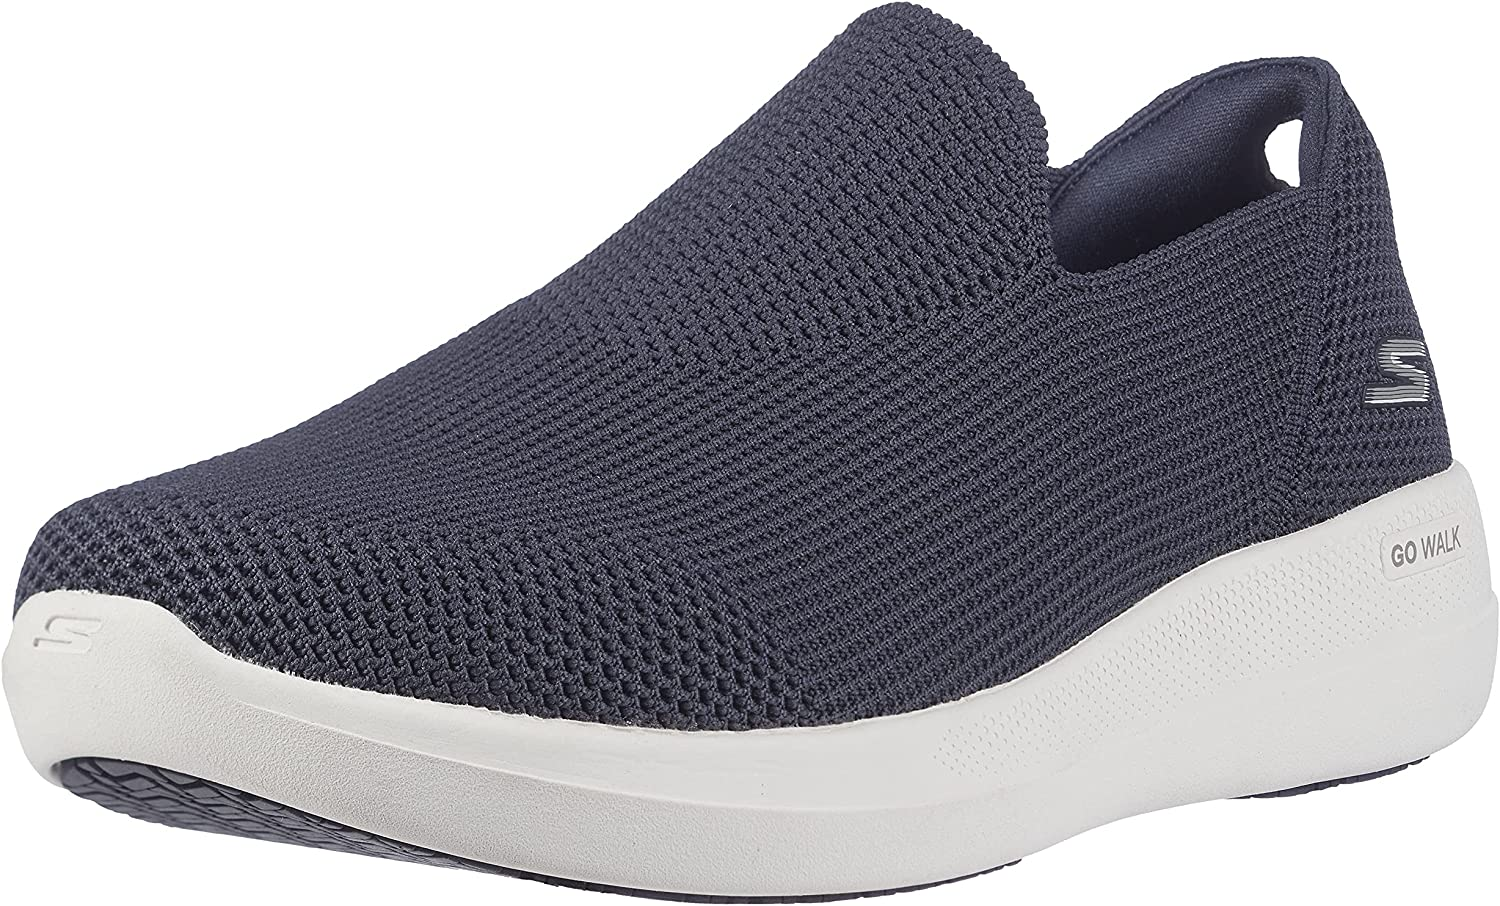 Skechers Men's GOwalk Stability Max 61% OFF - Athletic OFFicial shop Loafer Slip-On Casual